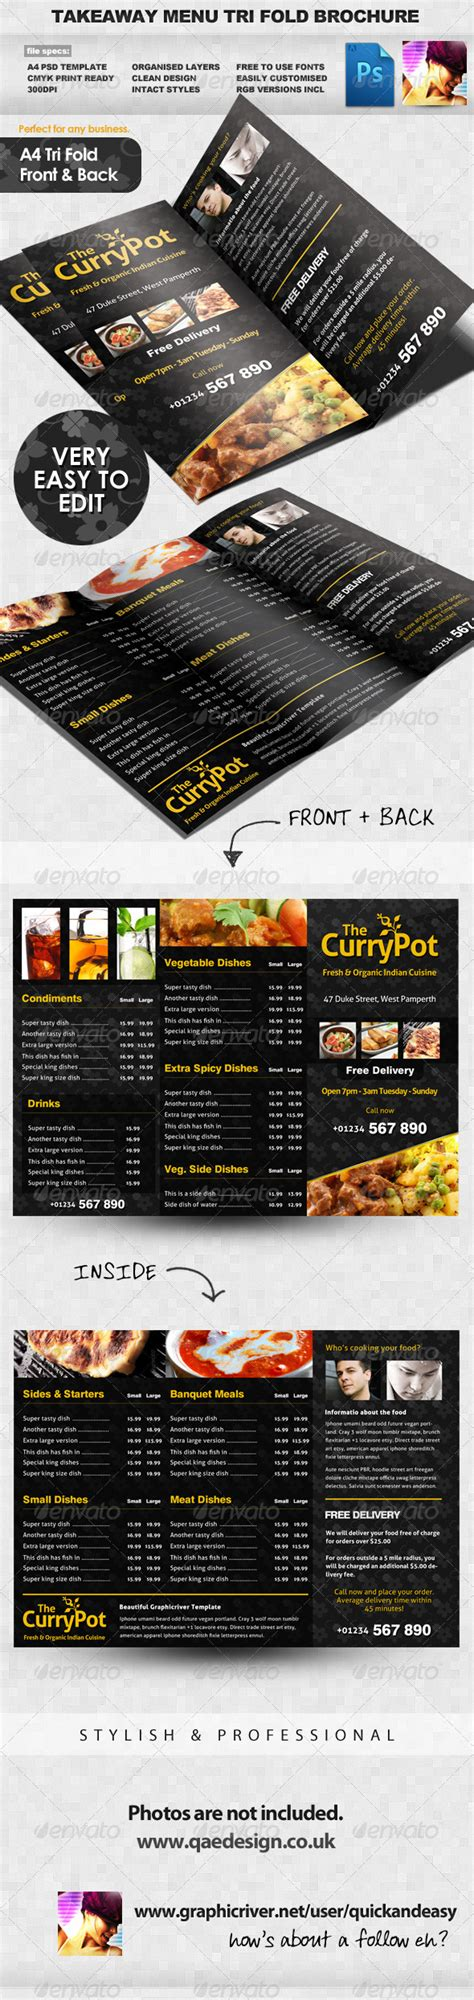 takeaway menu design templates takeaway food menu trifold brochure template graphicriver